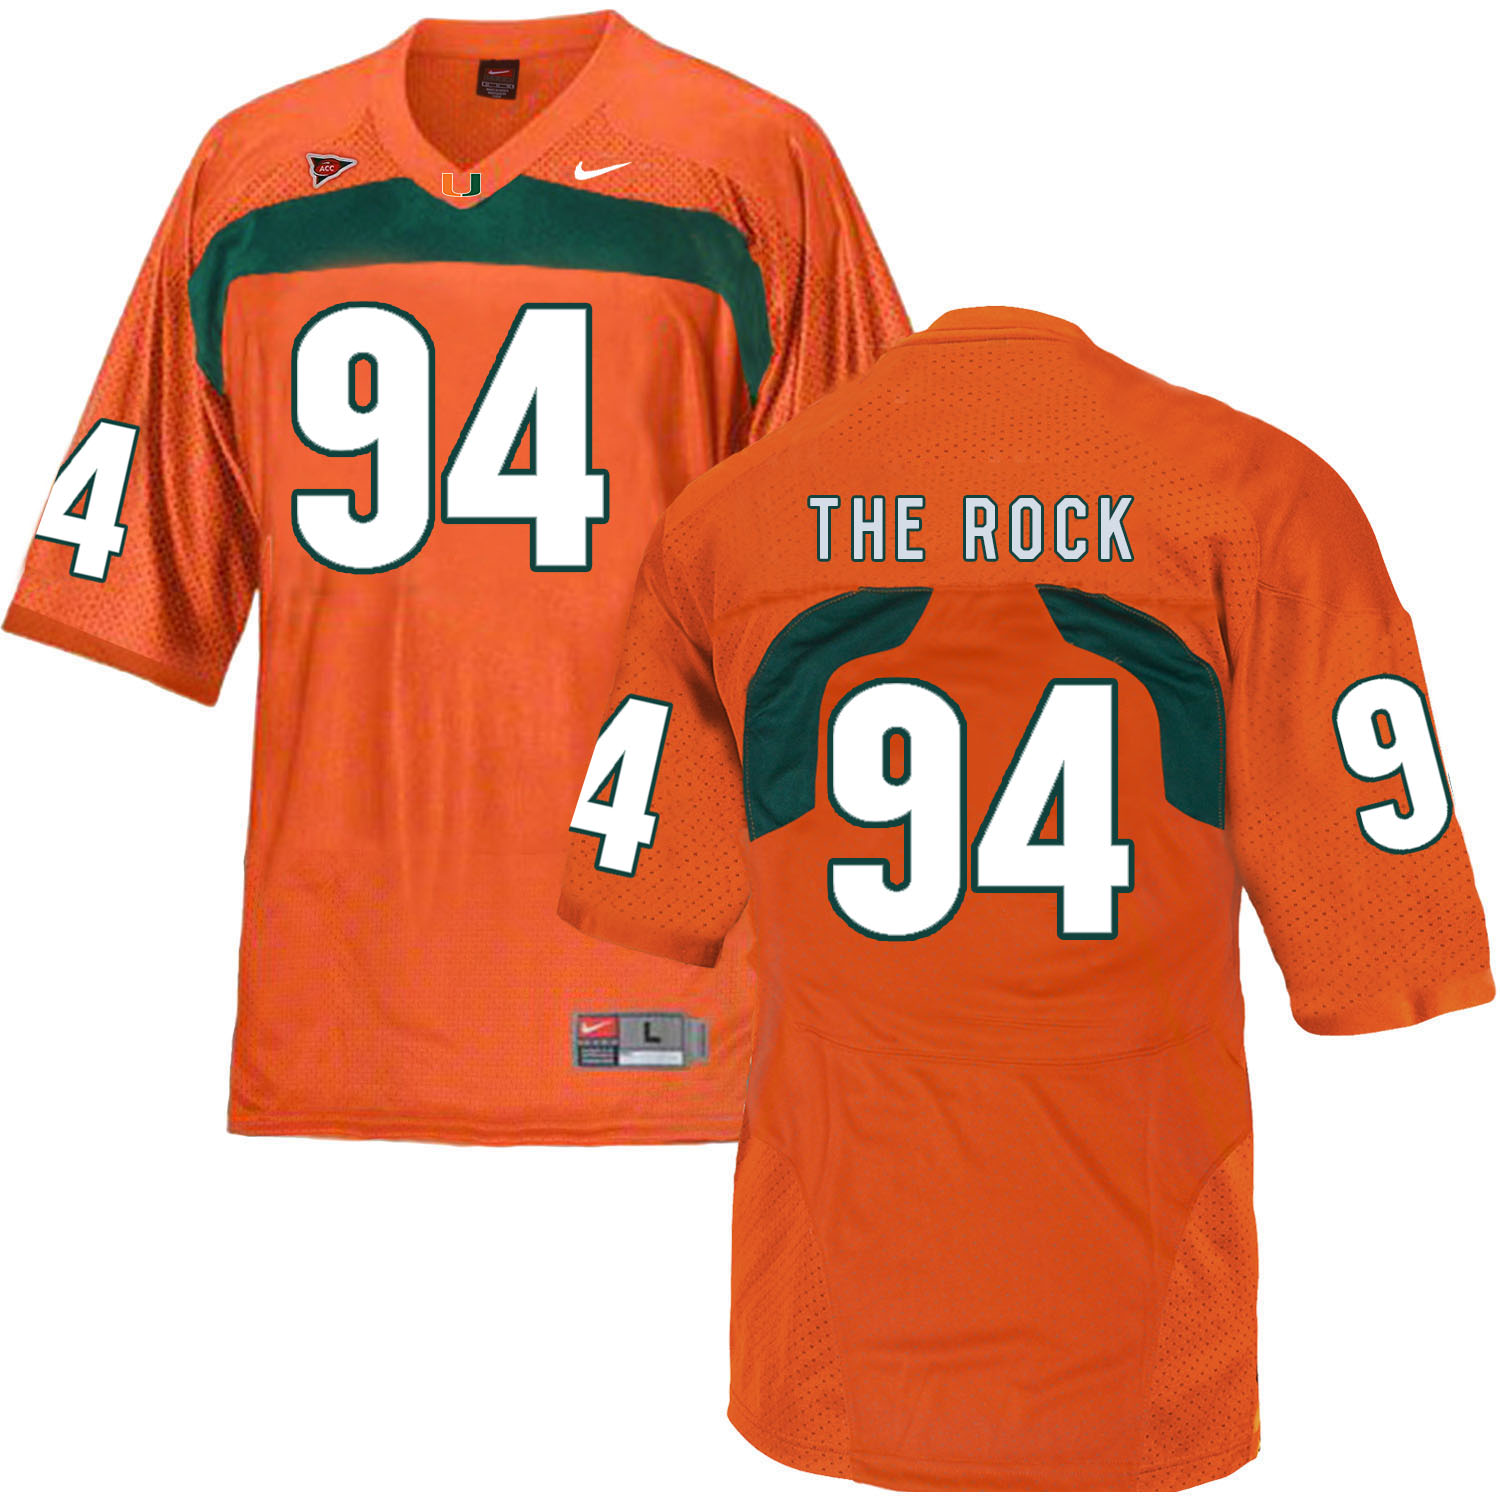 Miami Hurricanes 94 The Rock Orange College Football Jersey